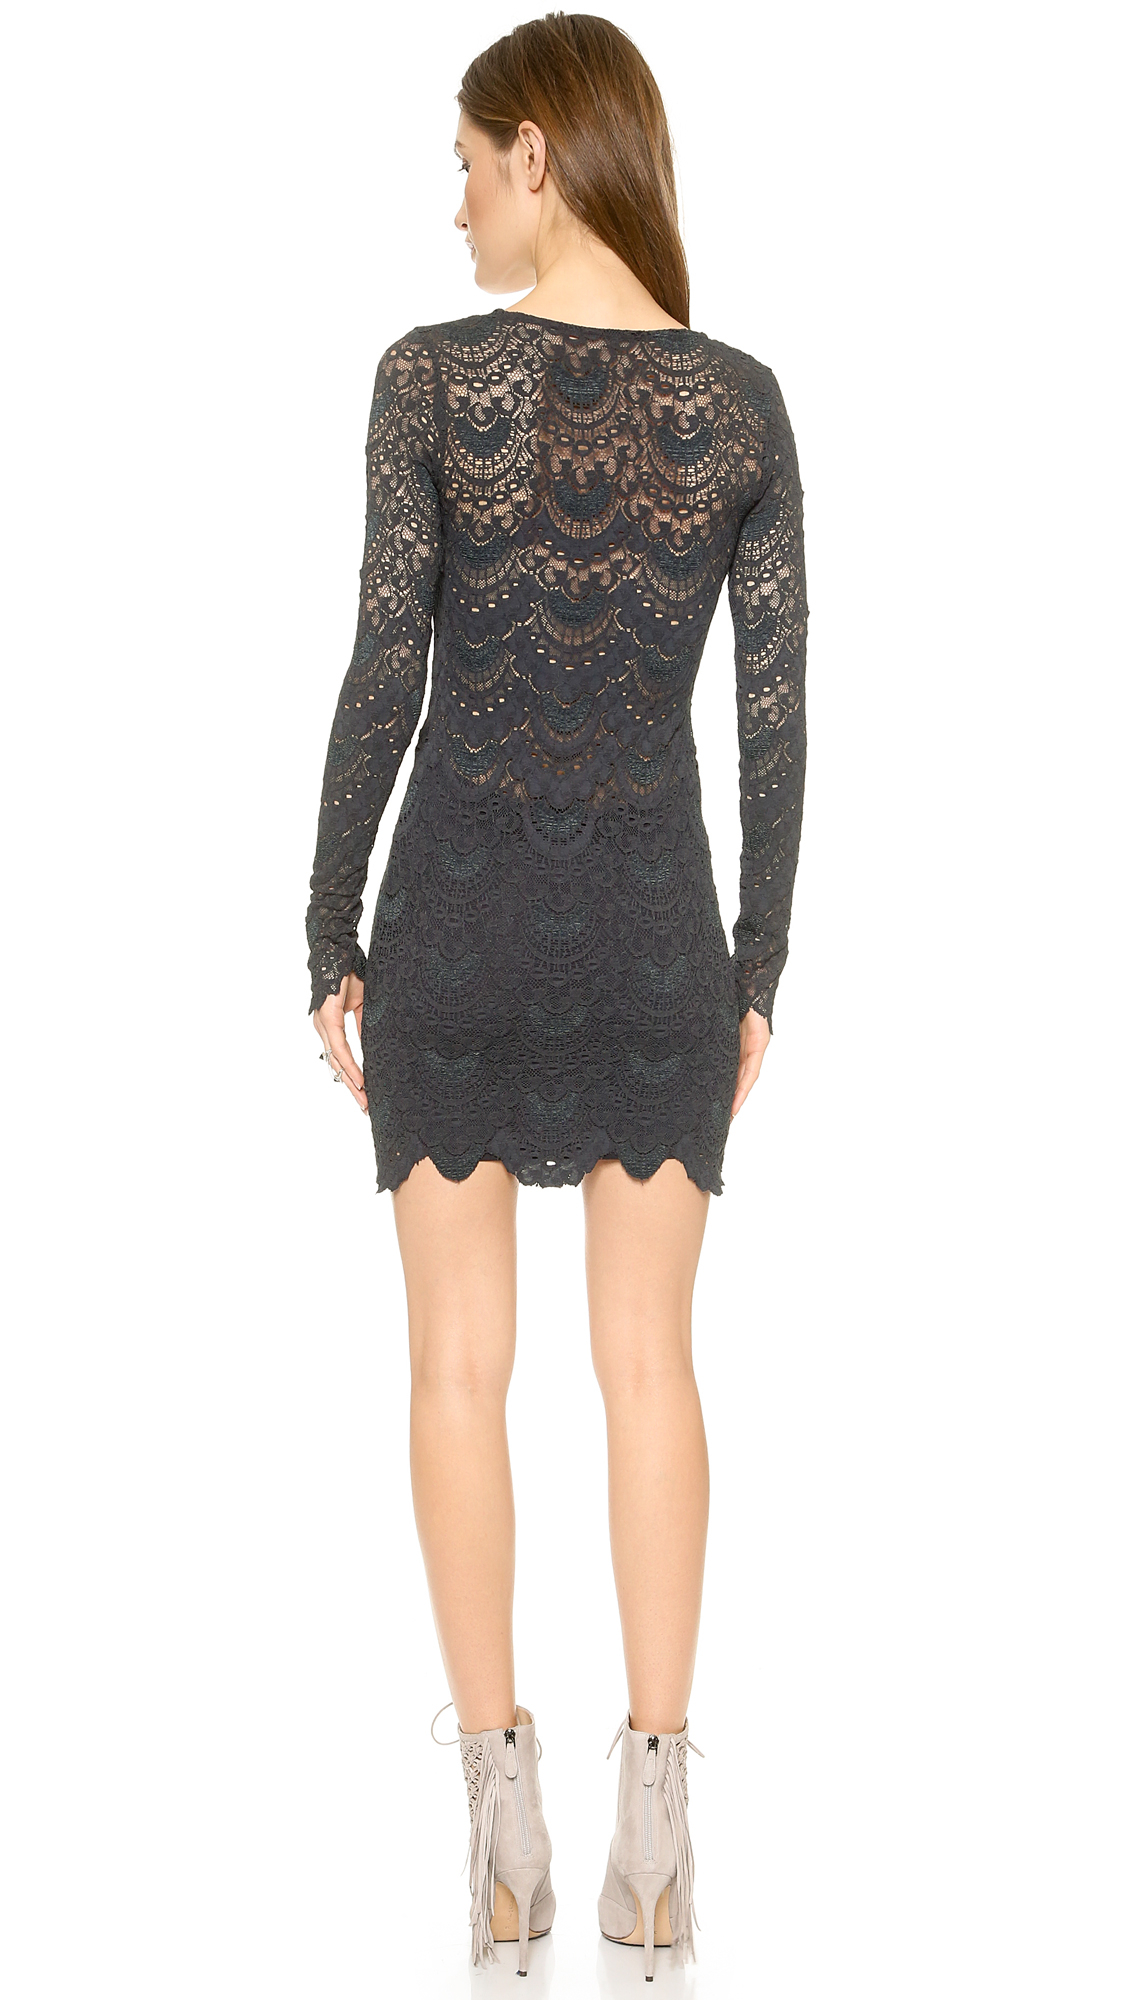 8ad299dfd30d Nightcap Spanish Lace Long Sleeve Deep V Dress - Ivory in Gray - Lyst